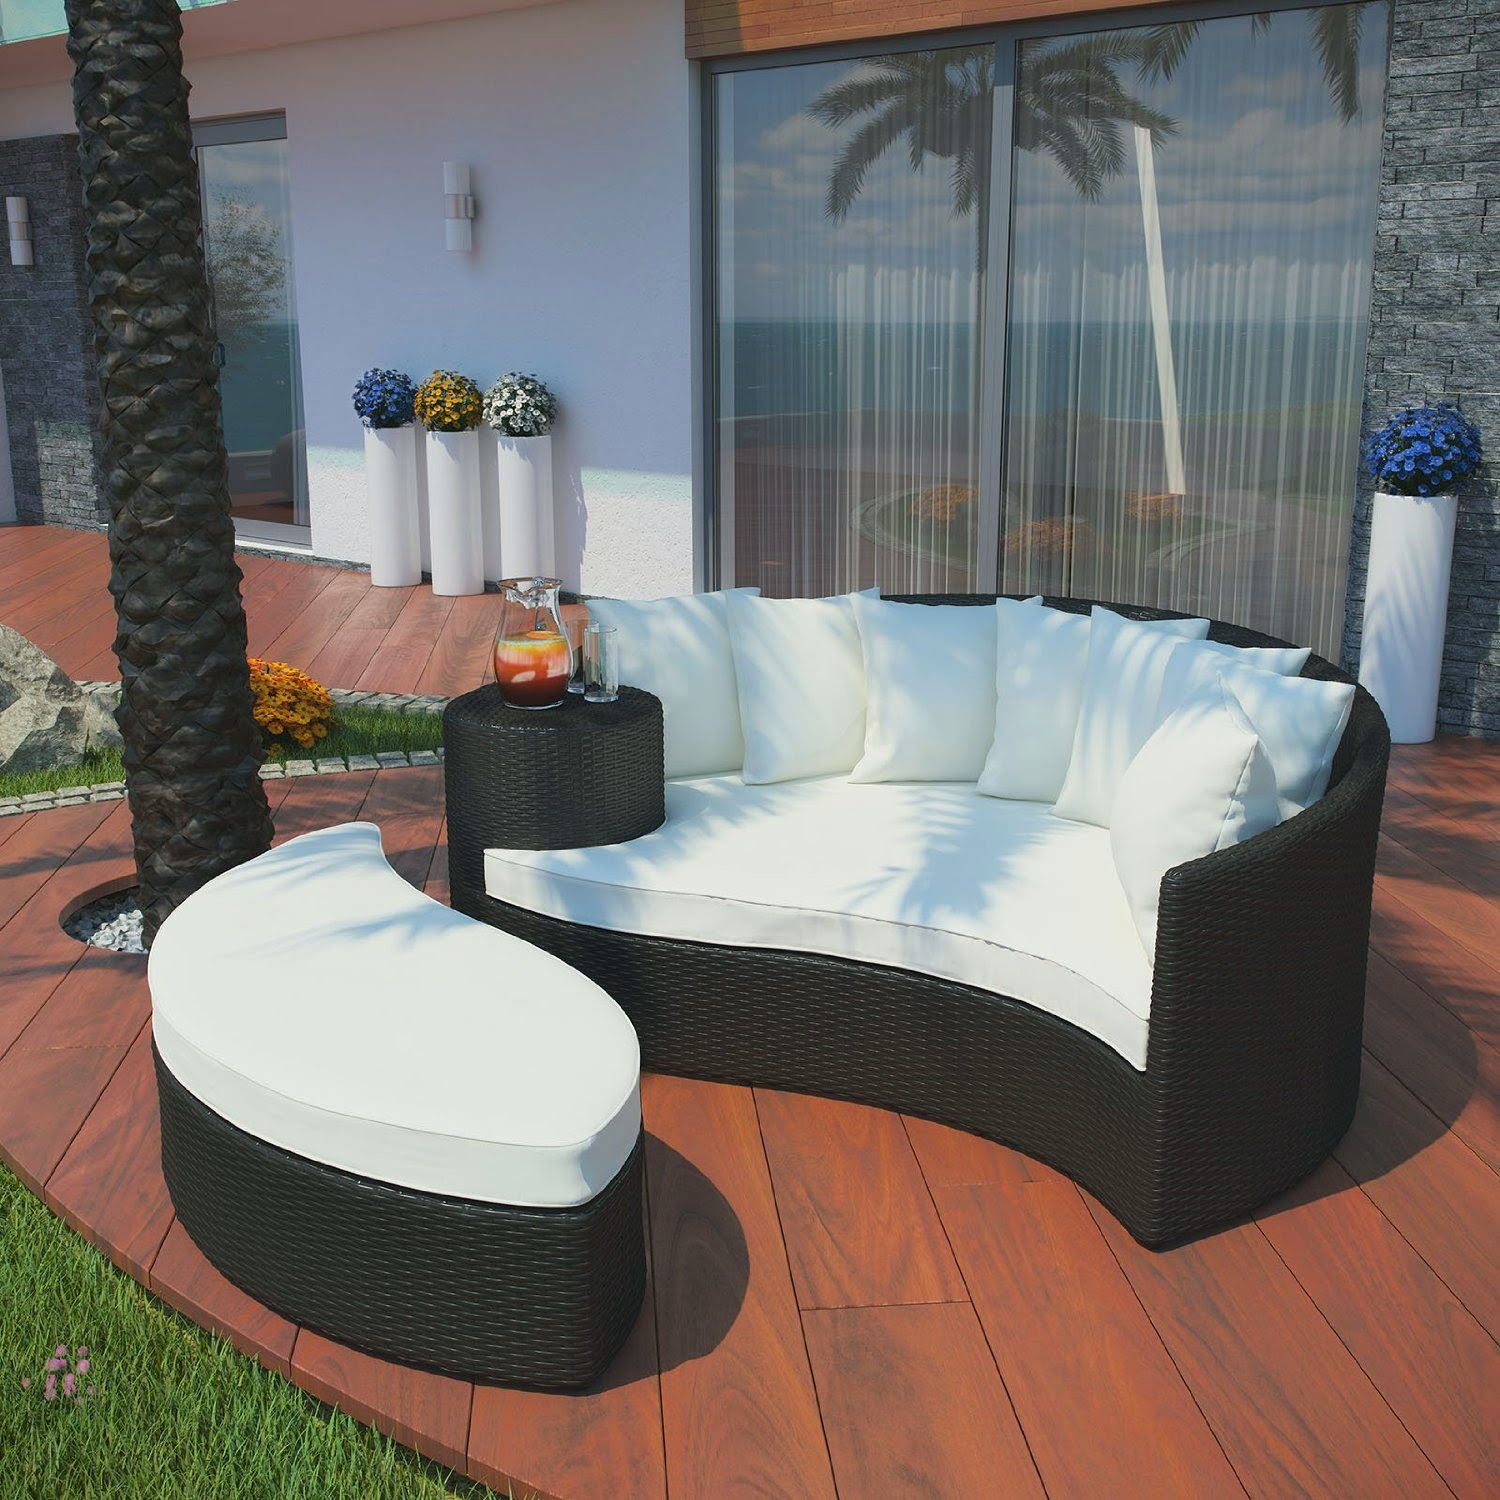 LexMod Taiji Outdoor Wicker Patio Daybed with Ottoman in Espresso with White Cushions